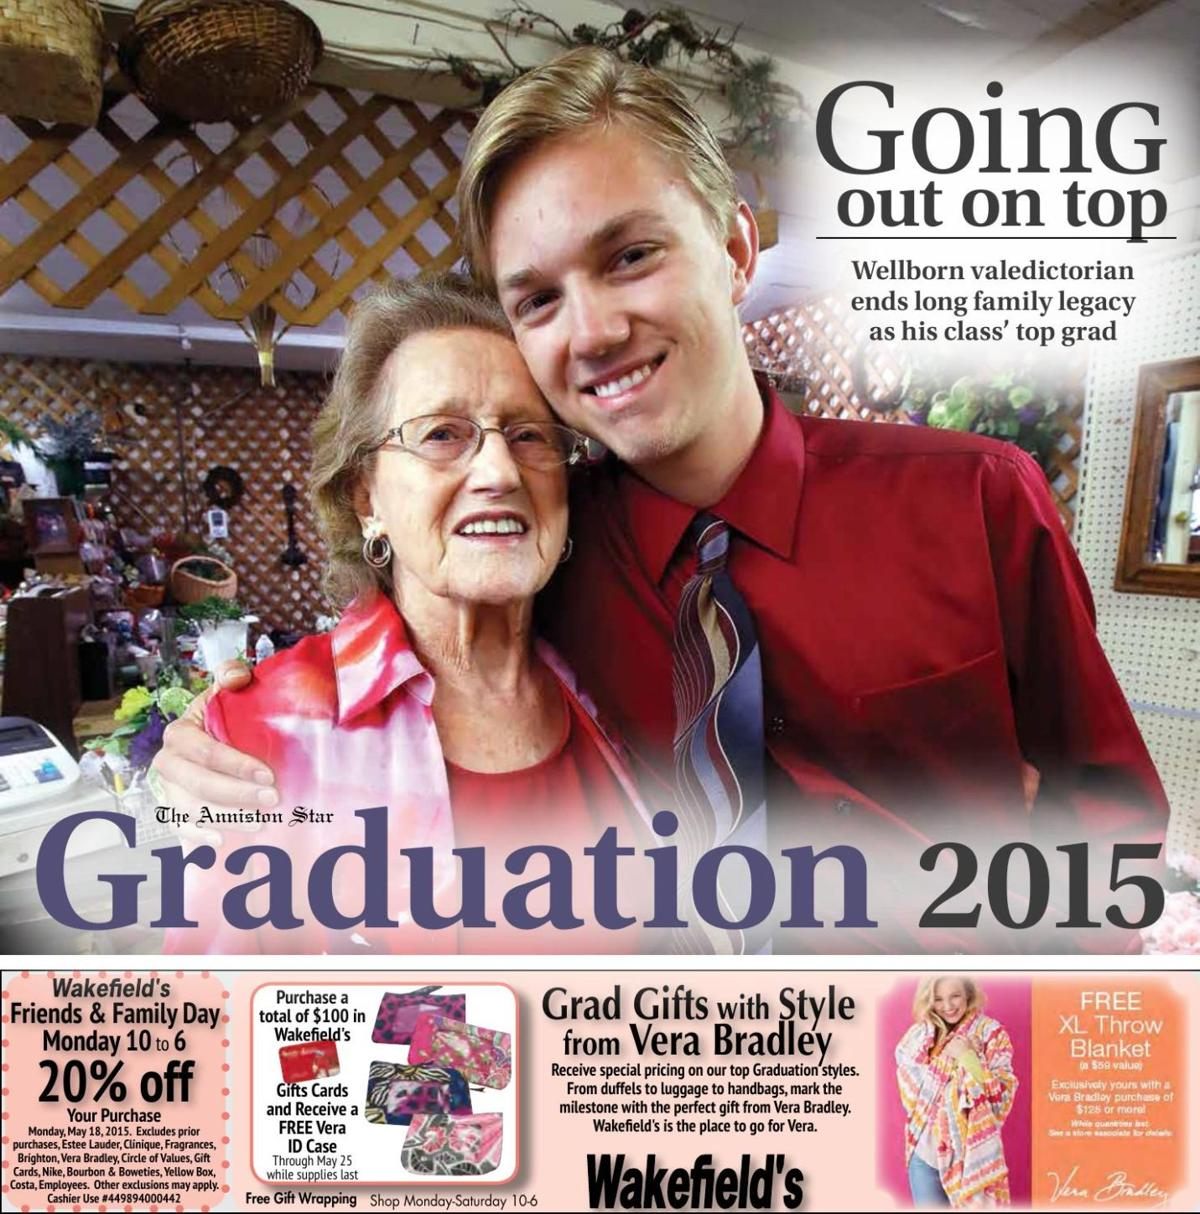 Graduation 2015: Anniston Star